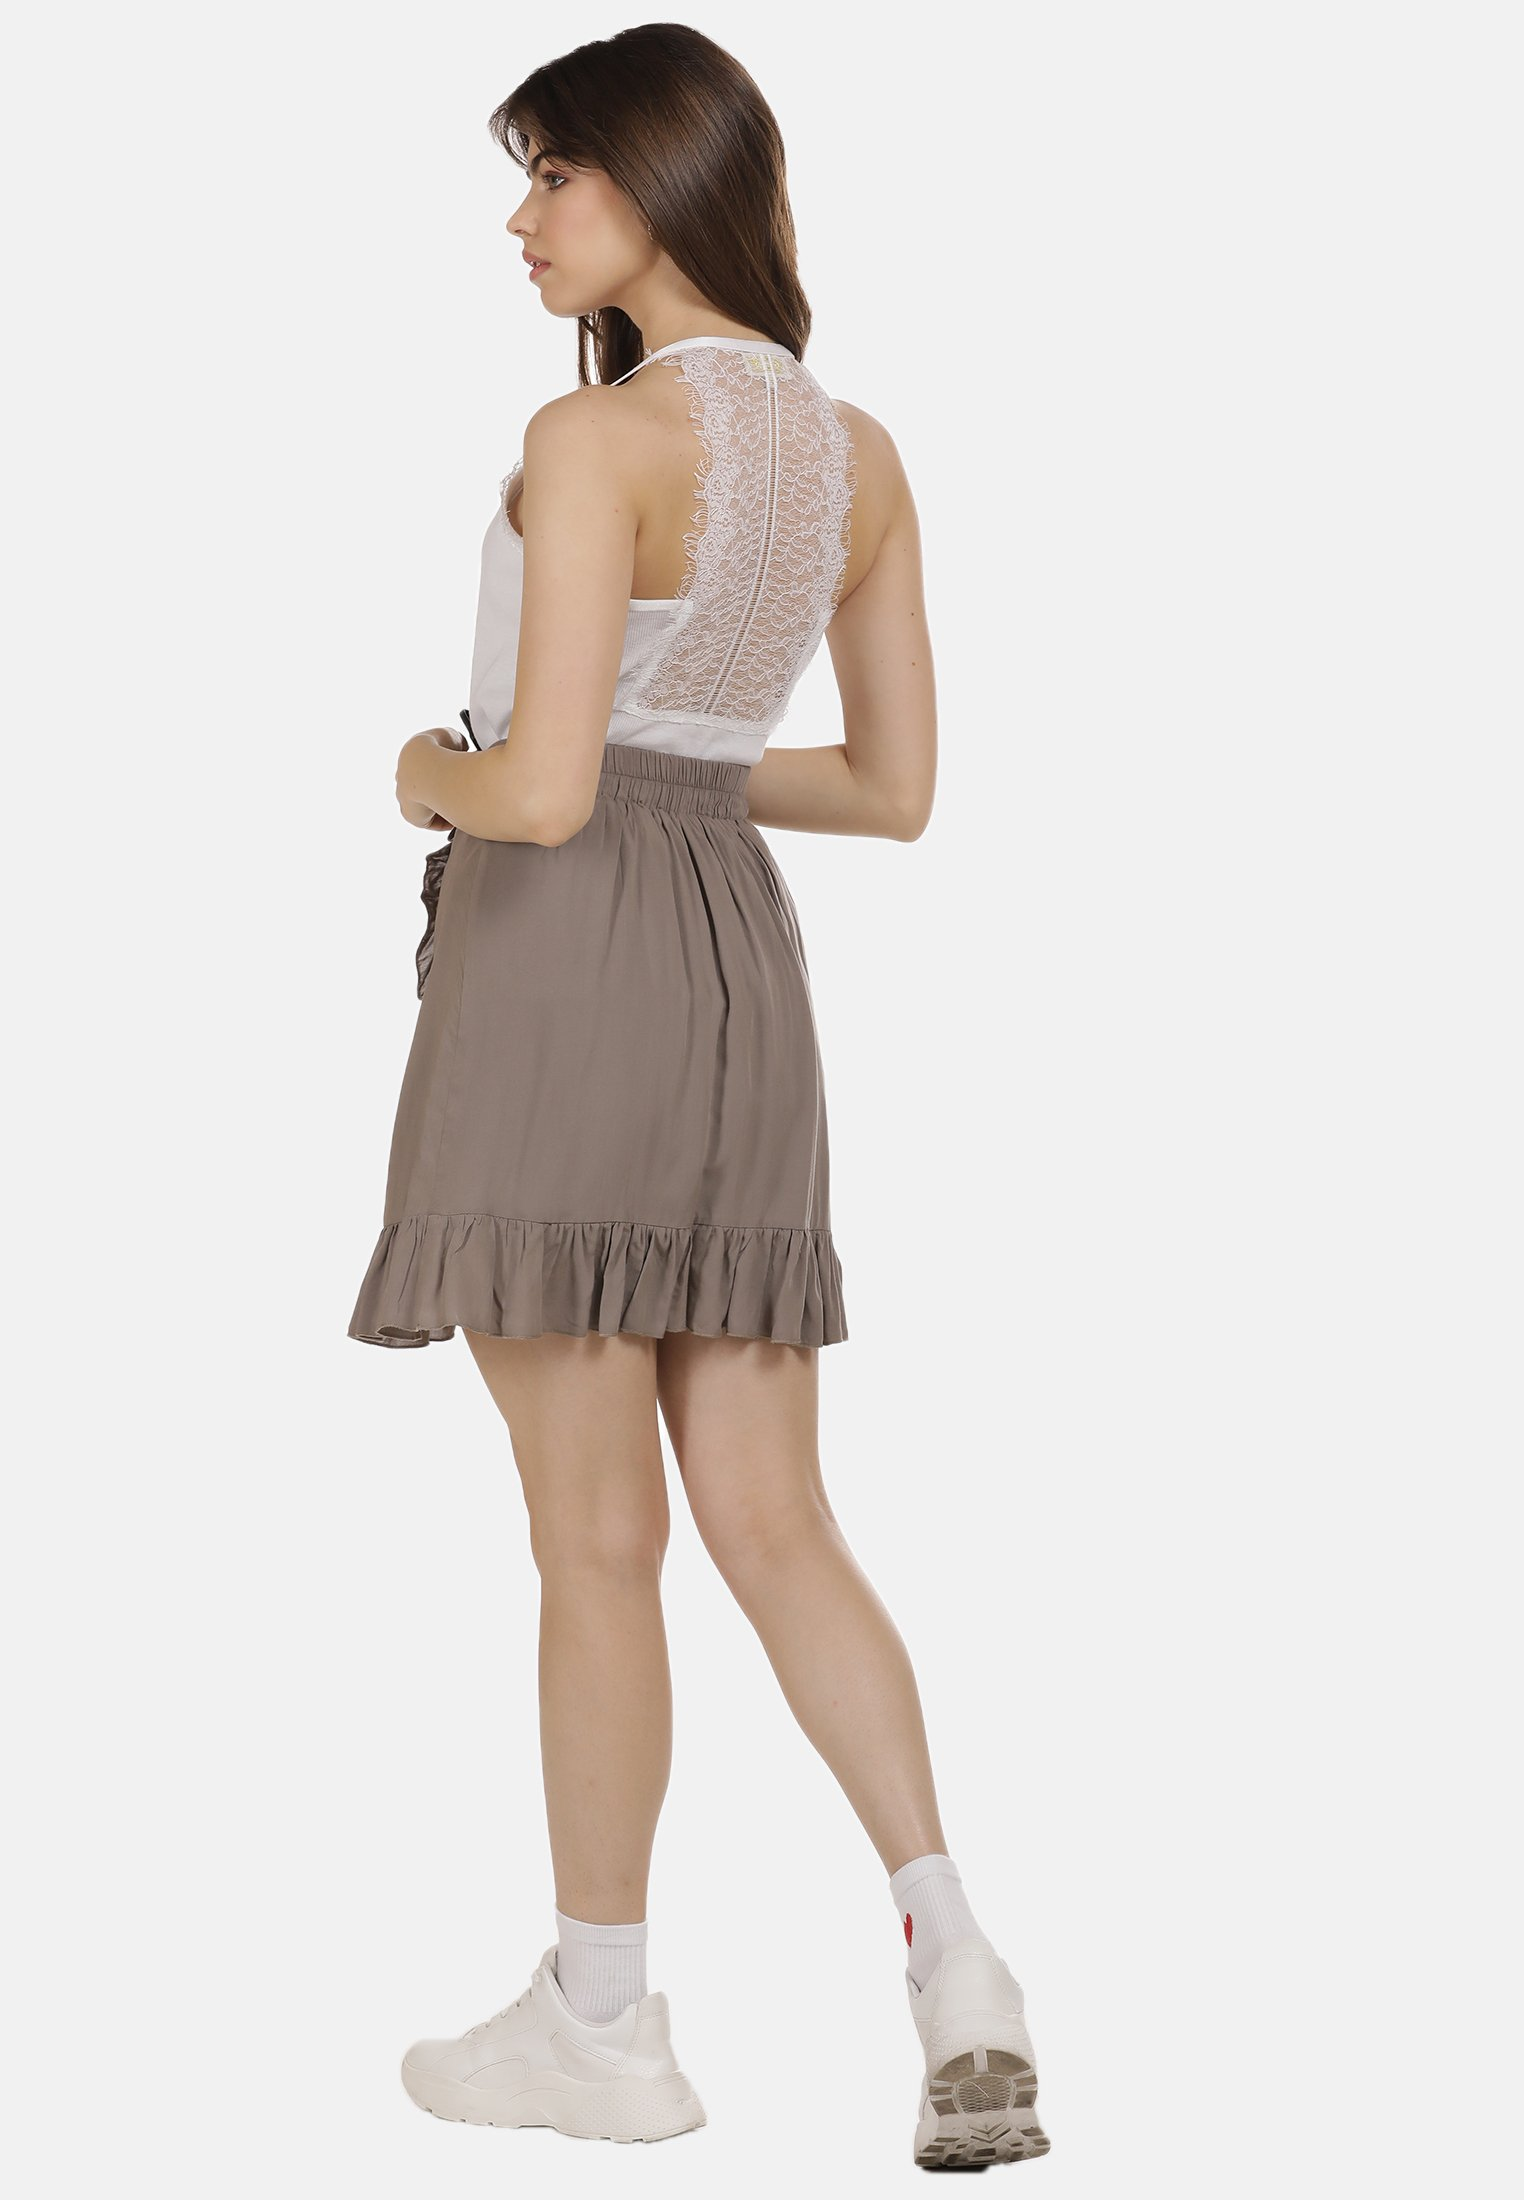 New Lower Prices Women's Clothing myMo MINIROCK A-line skirt taupe K4iZdPOZp